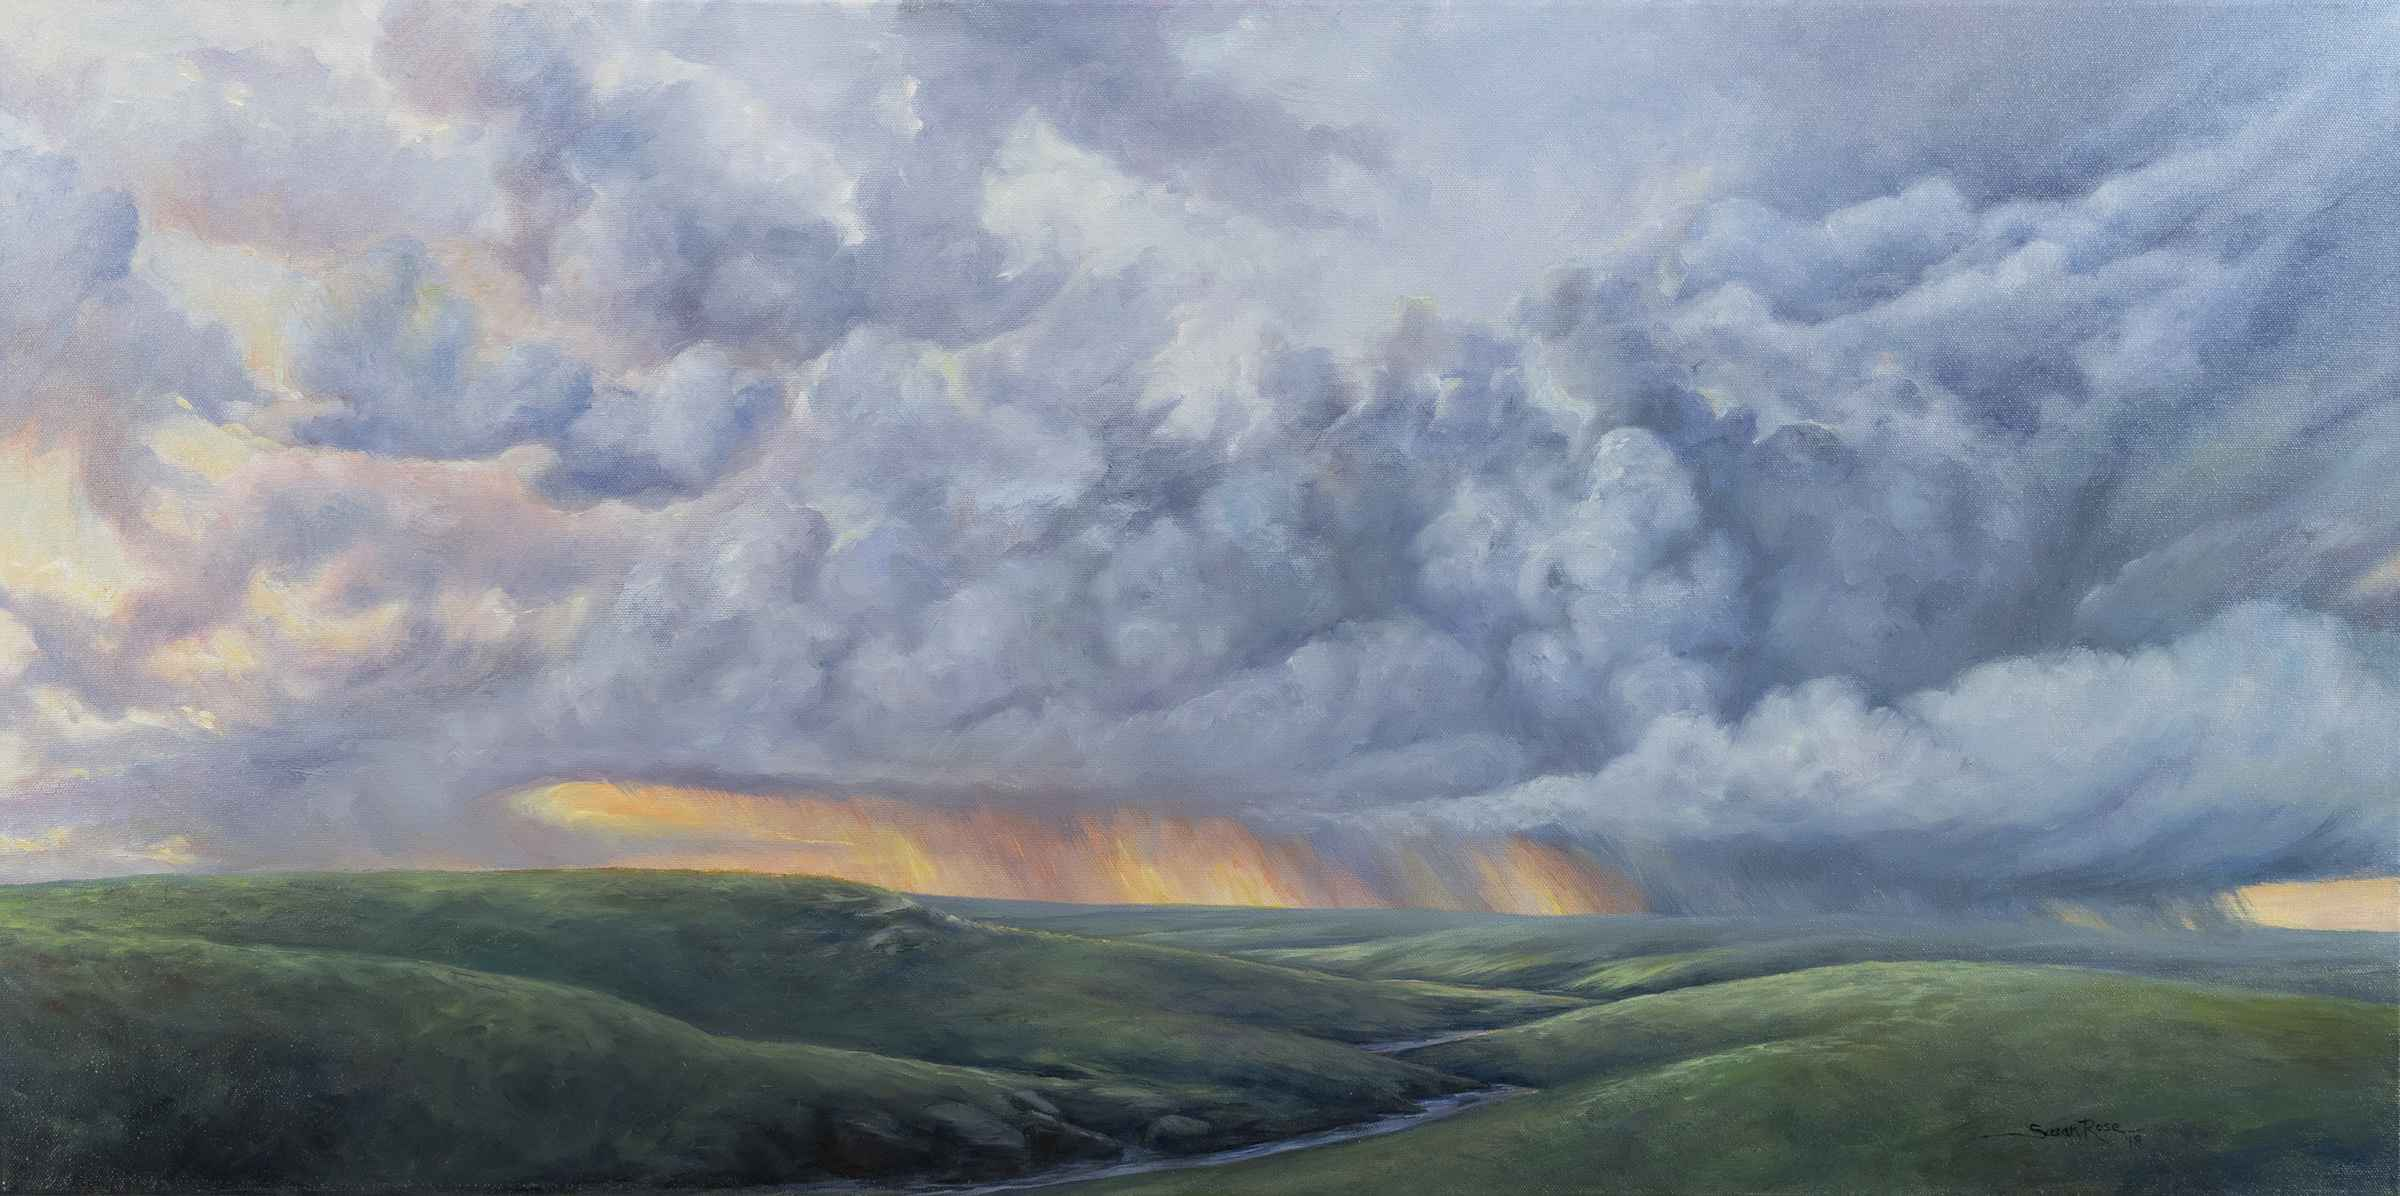 Morning Blessings by  Susan Rose - Masterpiece Online